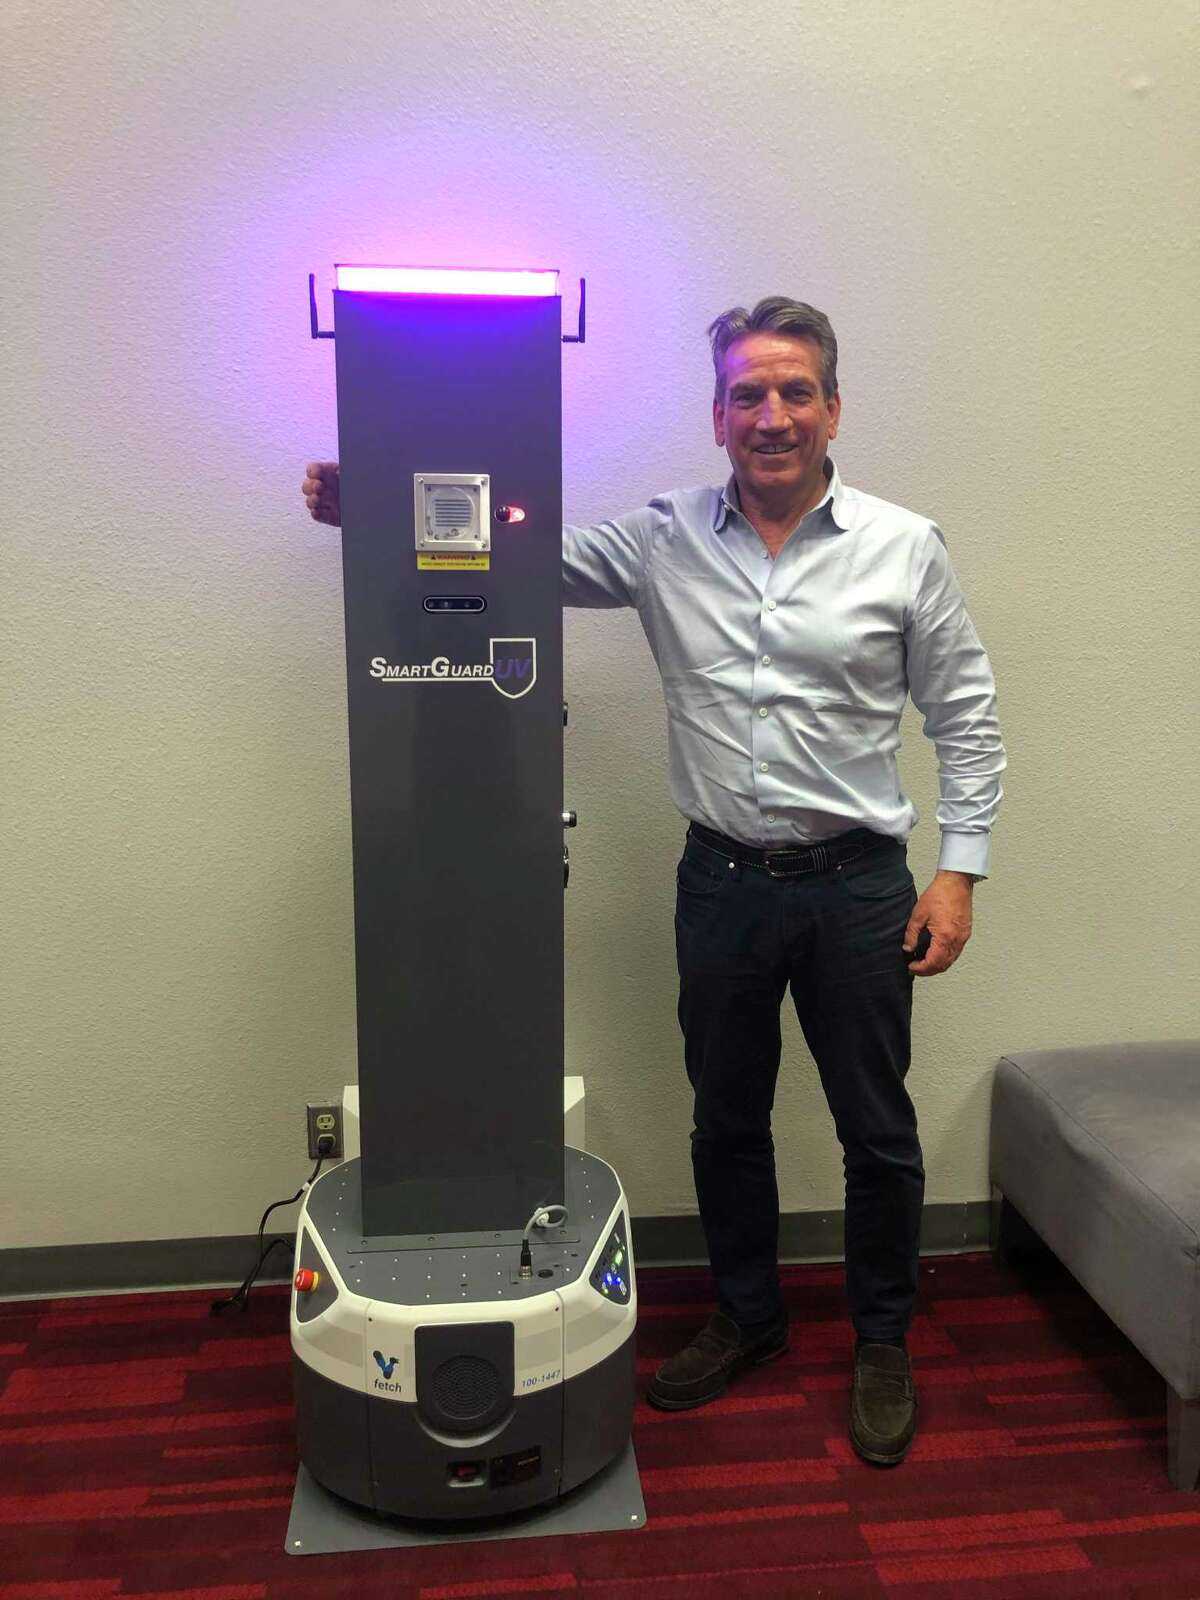 Bill Butler, CEO of SmargGuardUV, with the company's autonomous mobile robot